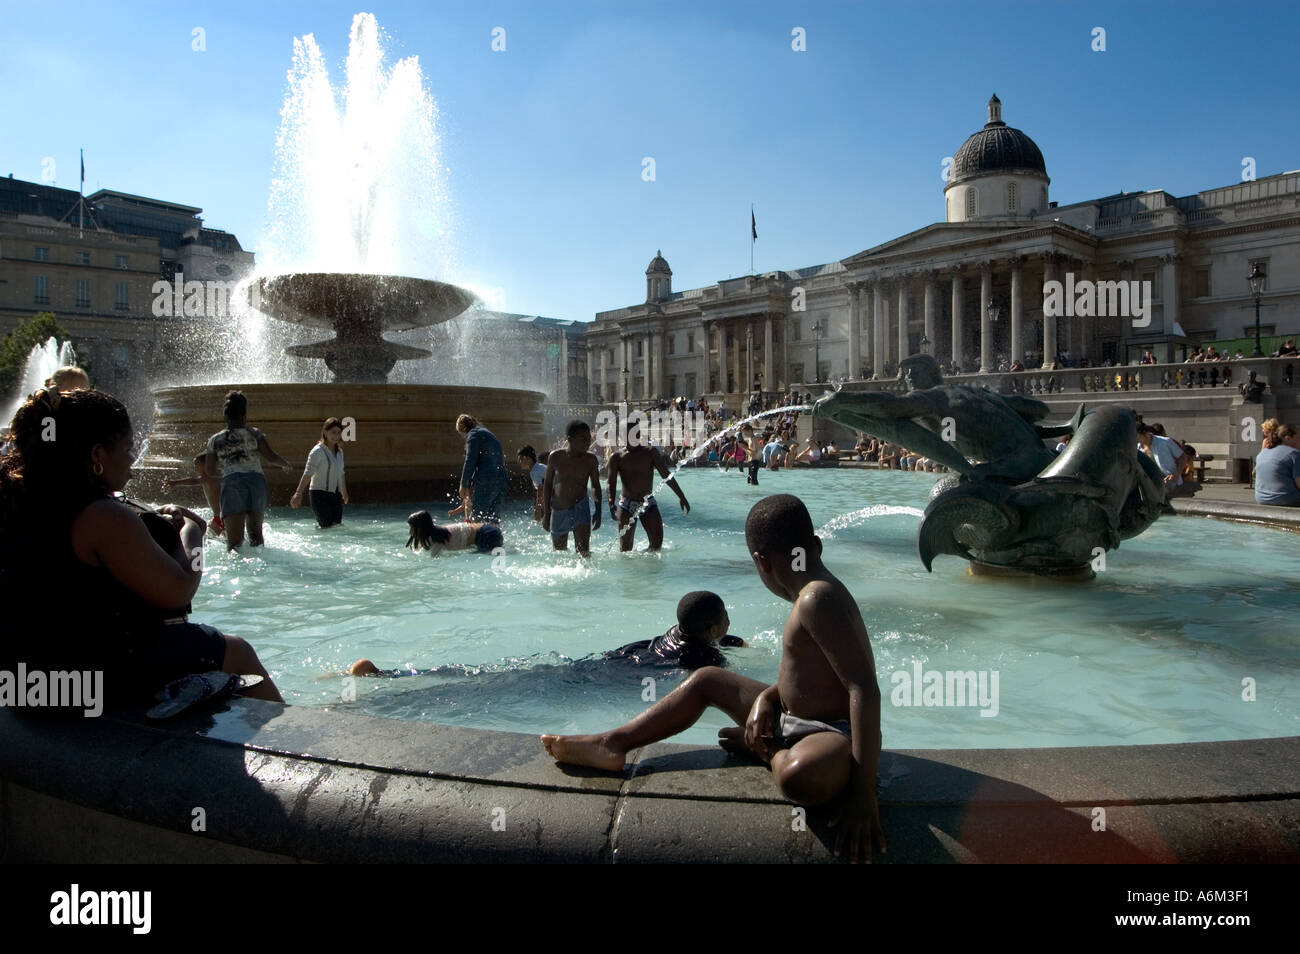 Young children cooling off in fountain during heat-wave at Trafalgar Square Central London - Stock Image